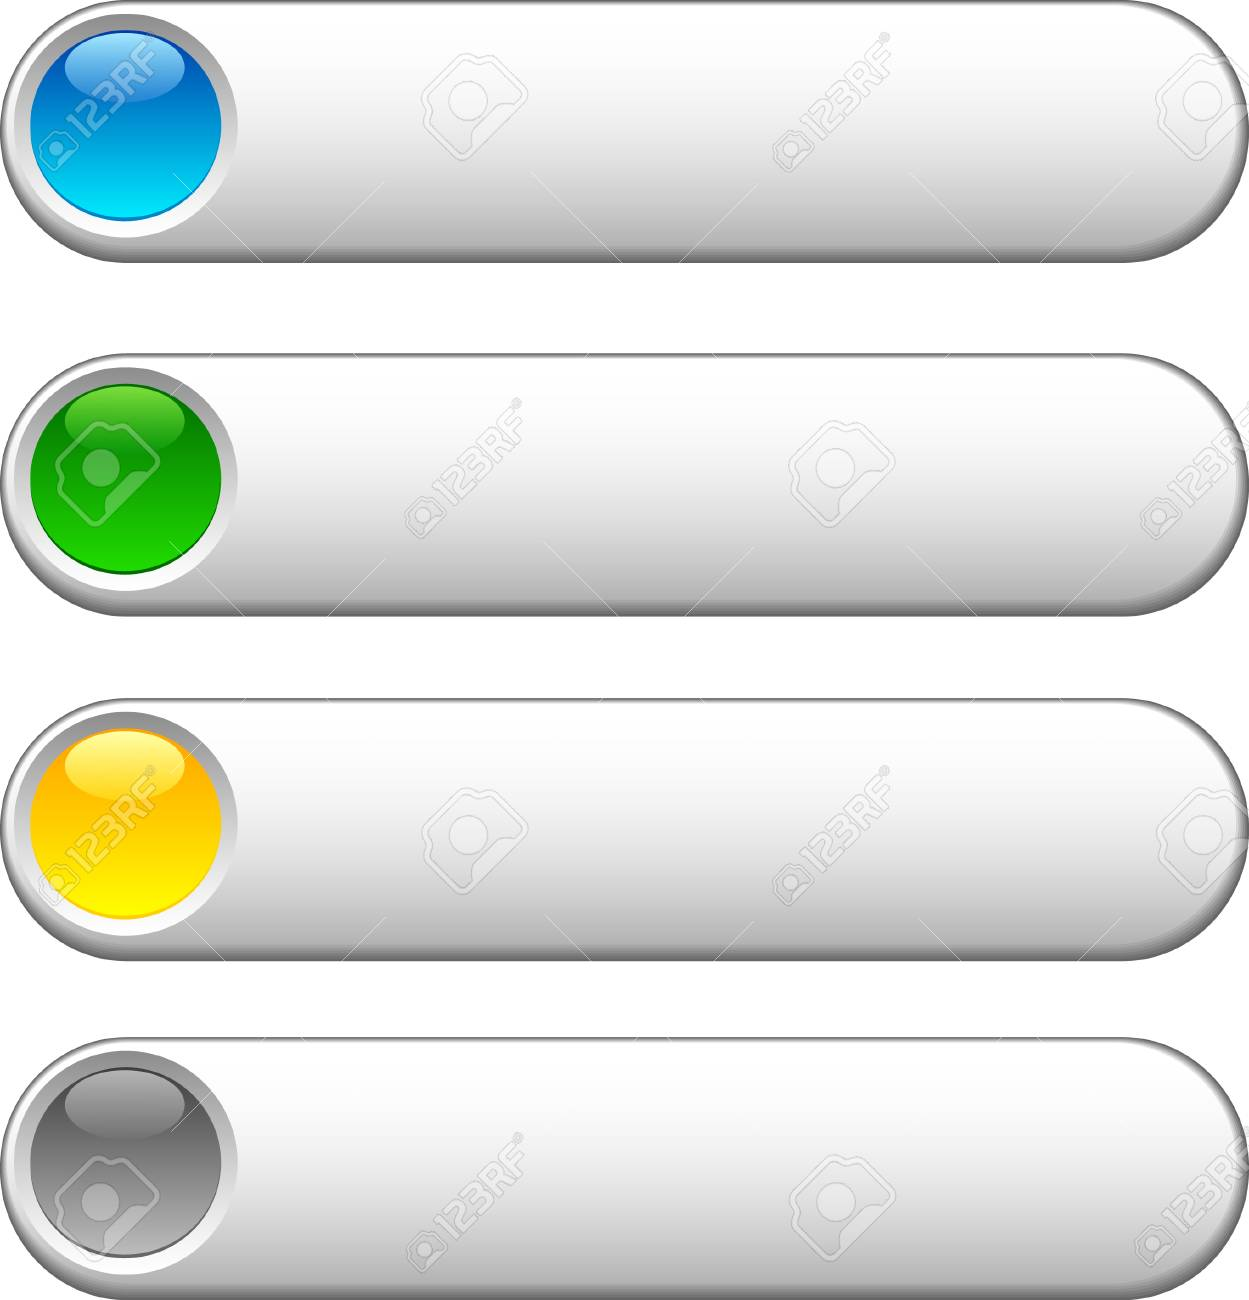 Web shiny buttons. Vector illustration. Stock Vector - 3982493